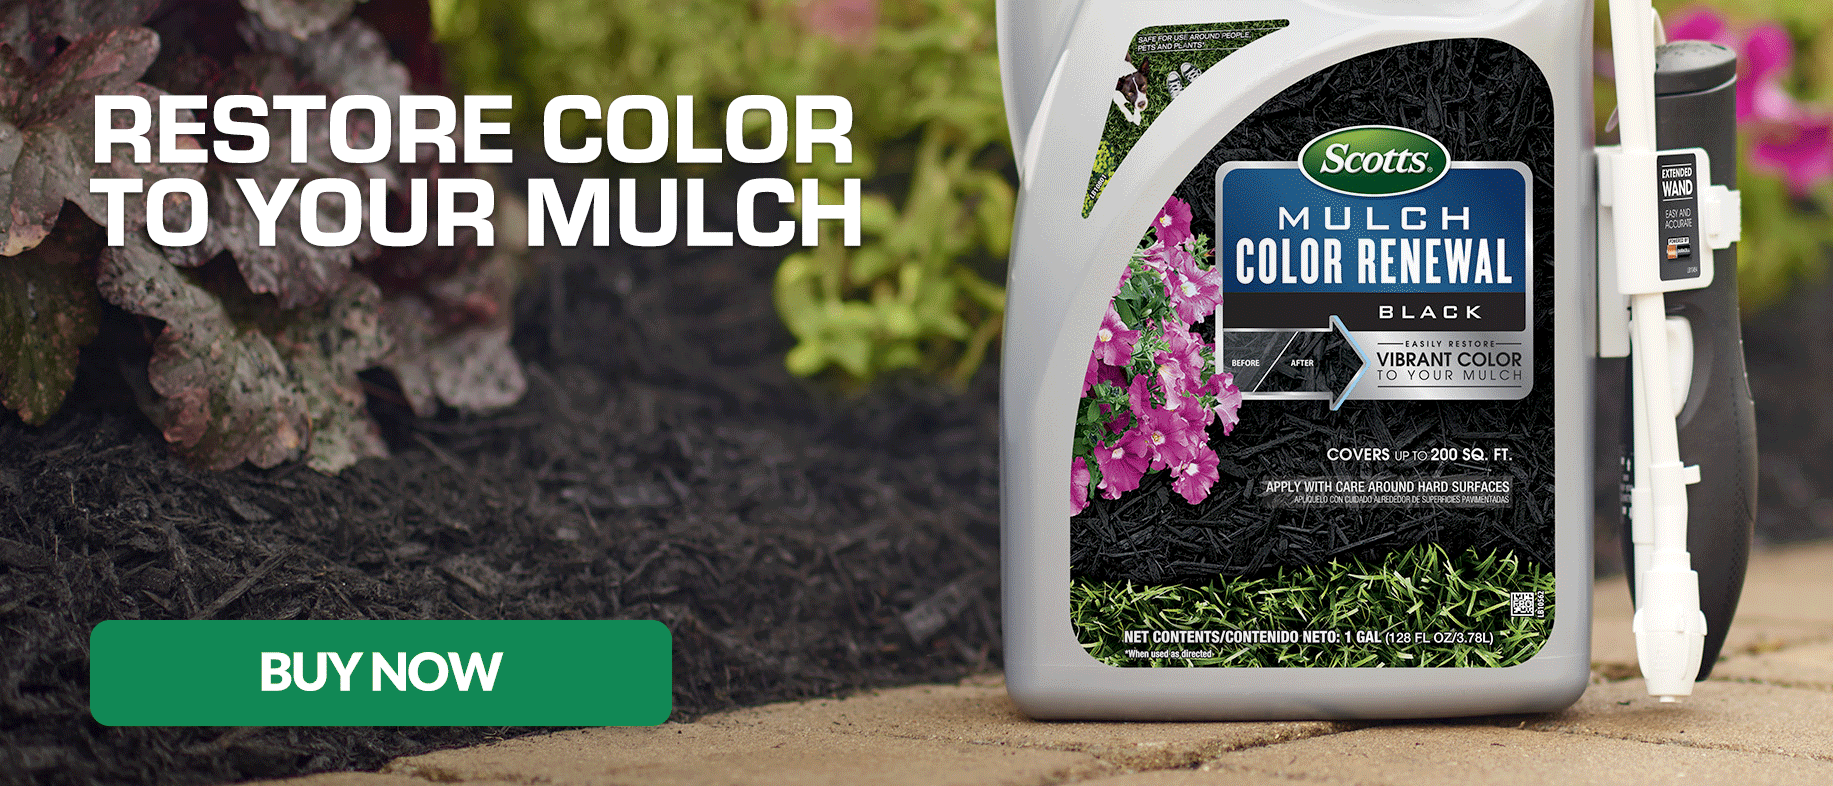 Restore Color to Your Mulch